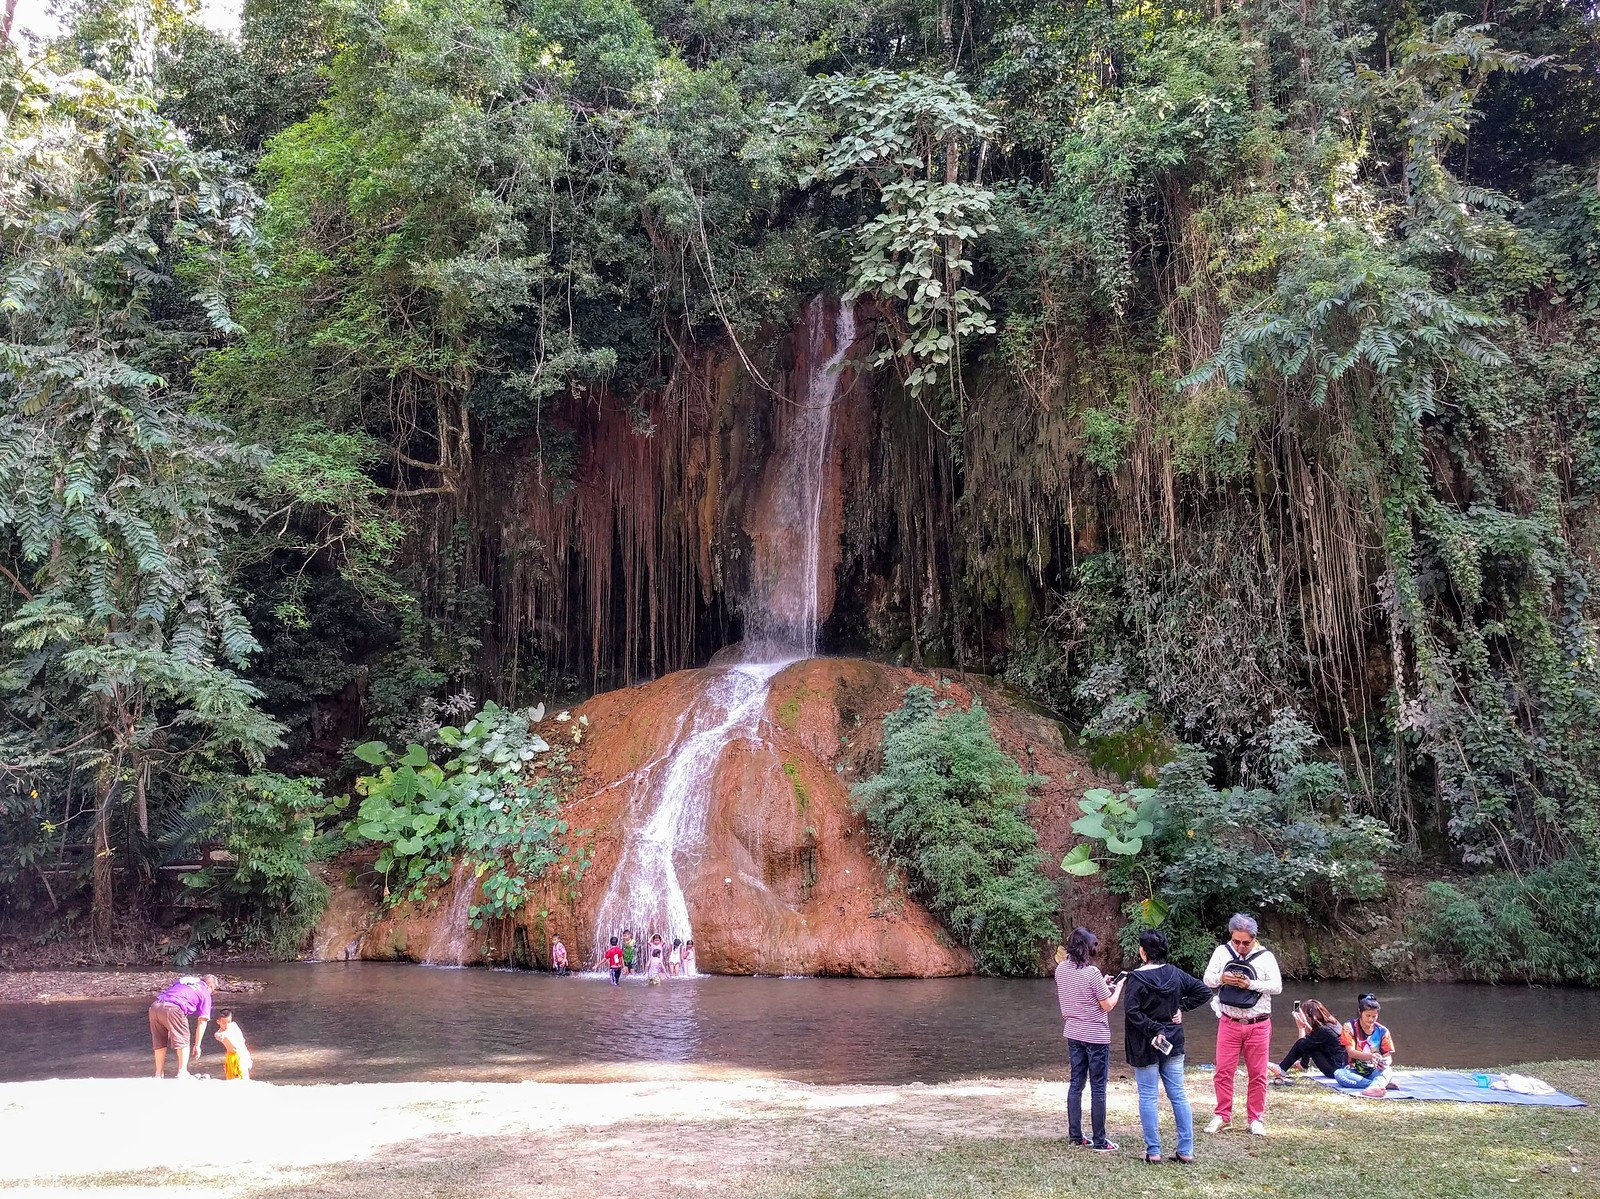 Phu Sang National Park & Hot Spring Waterfall